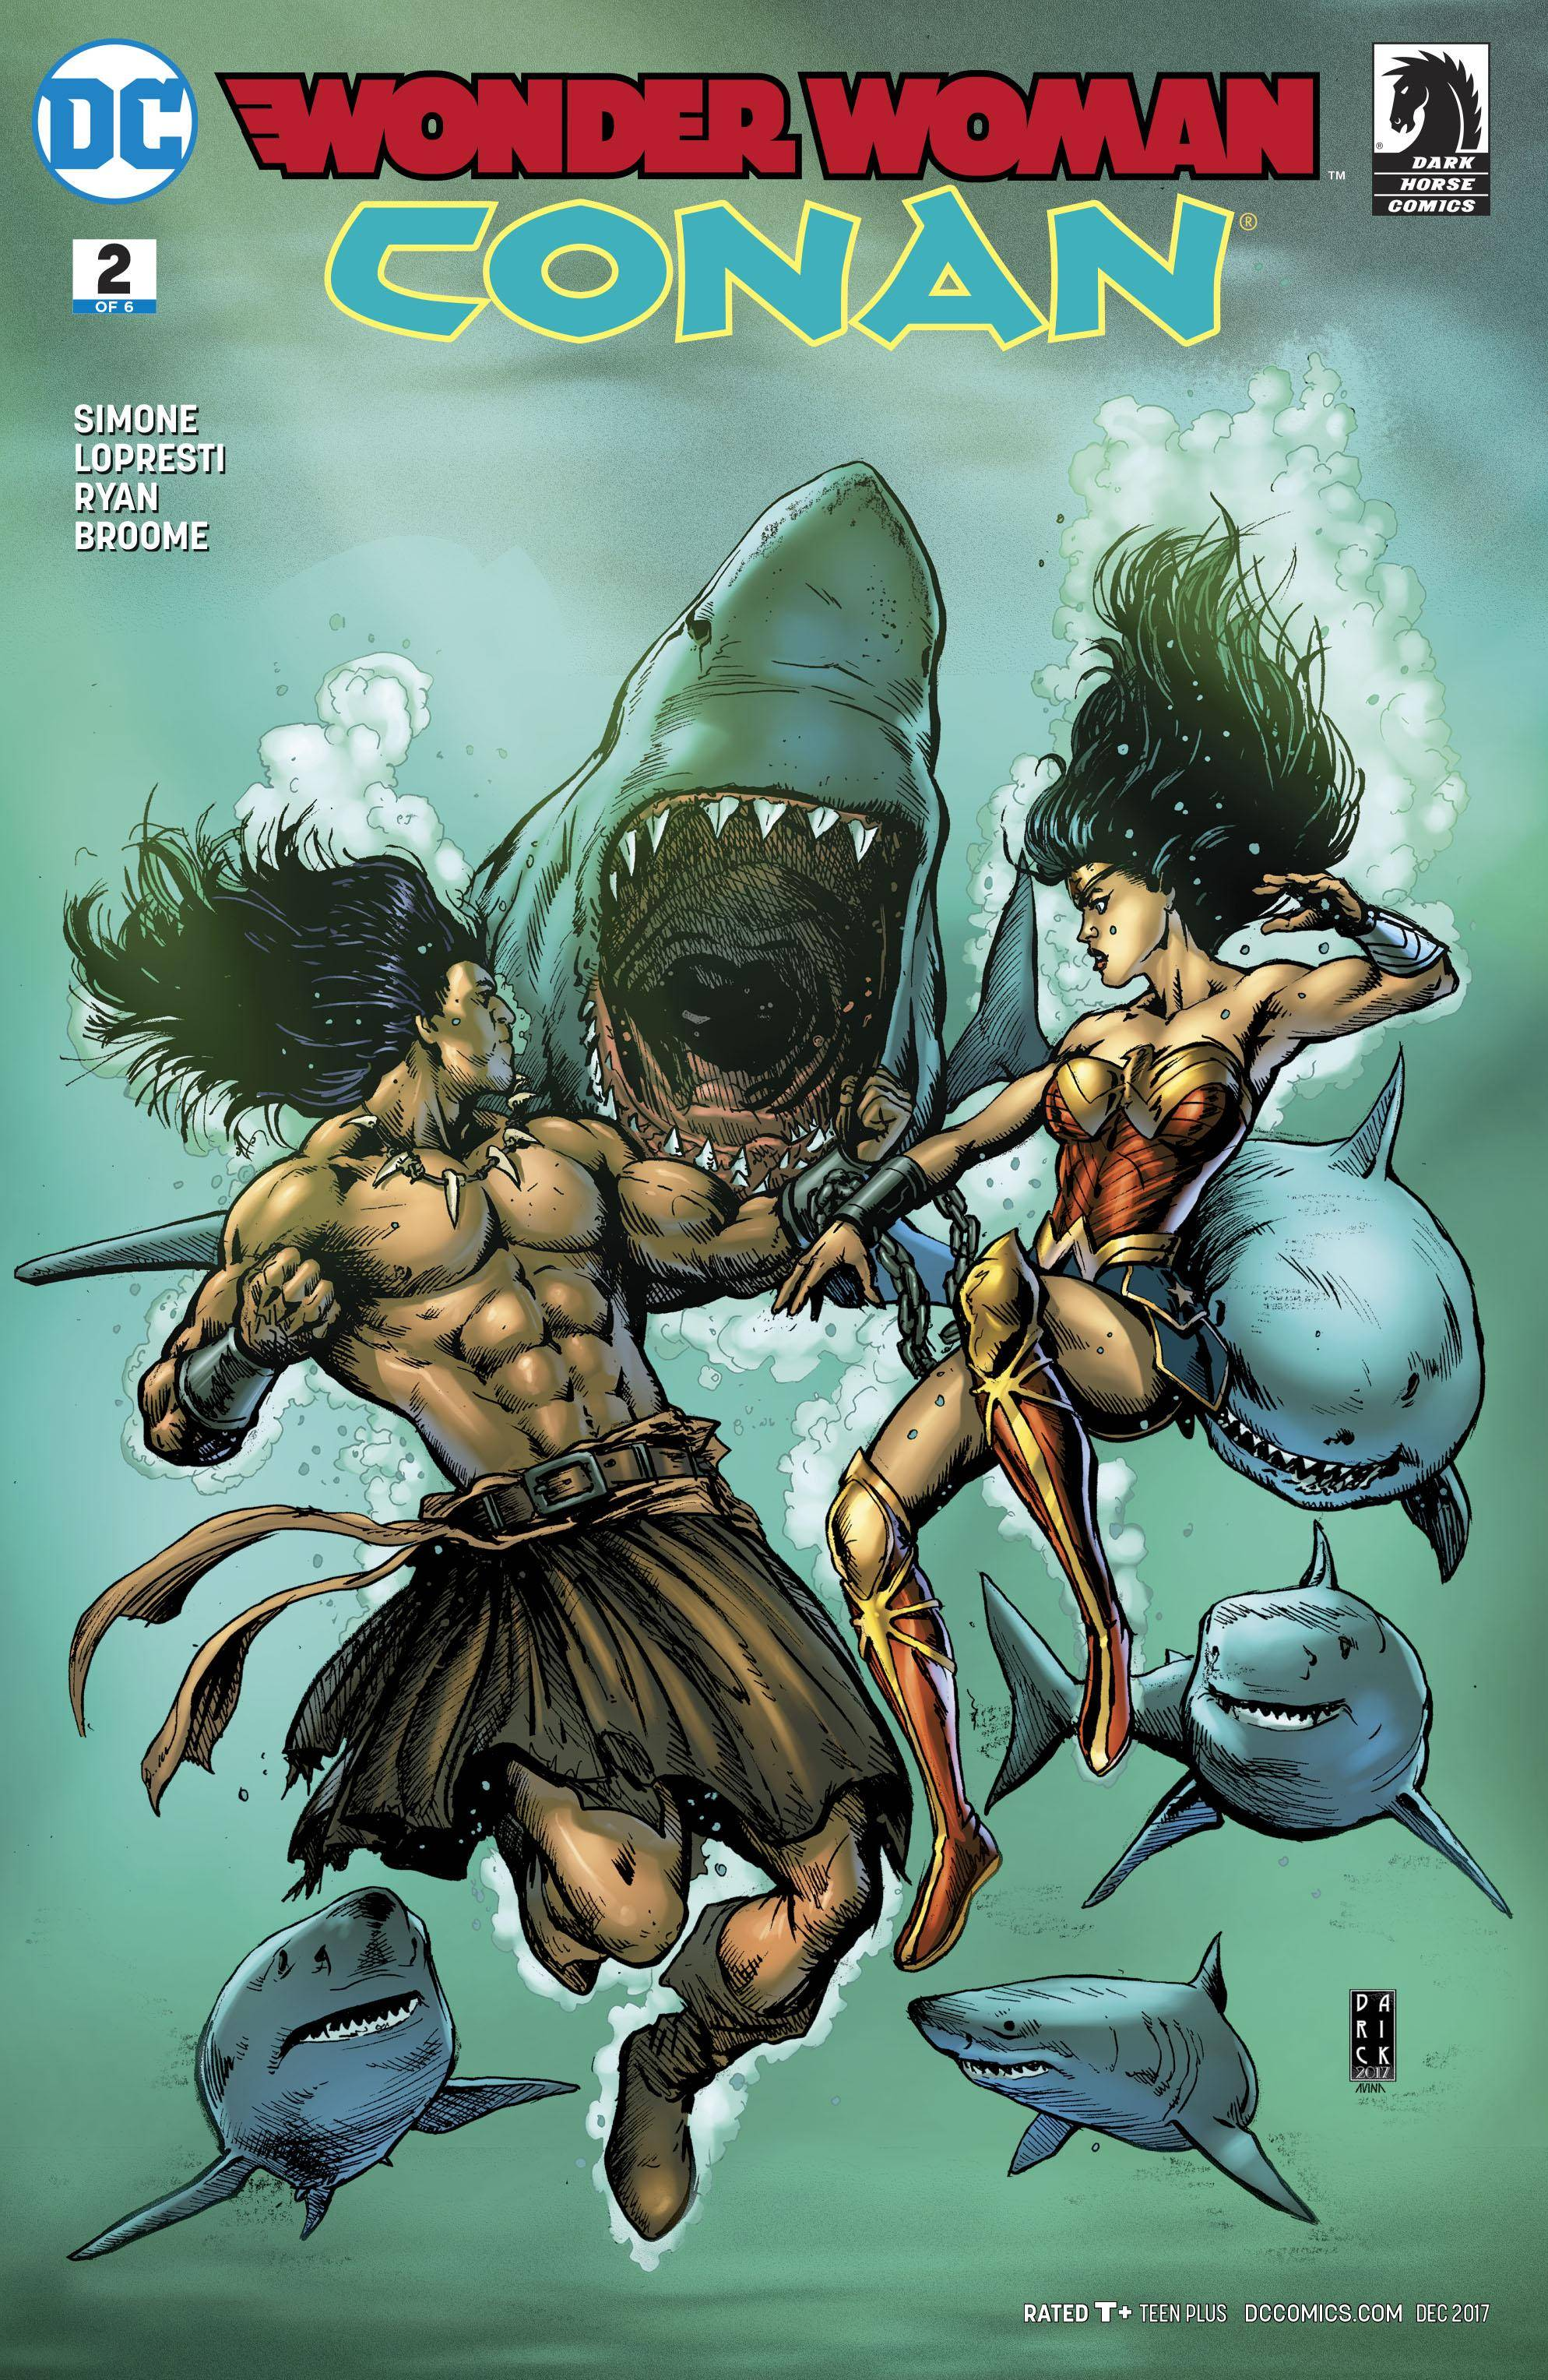 Wonder Woman - Conan 02 of 06 2 covers digital Son of Ultron-Empire